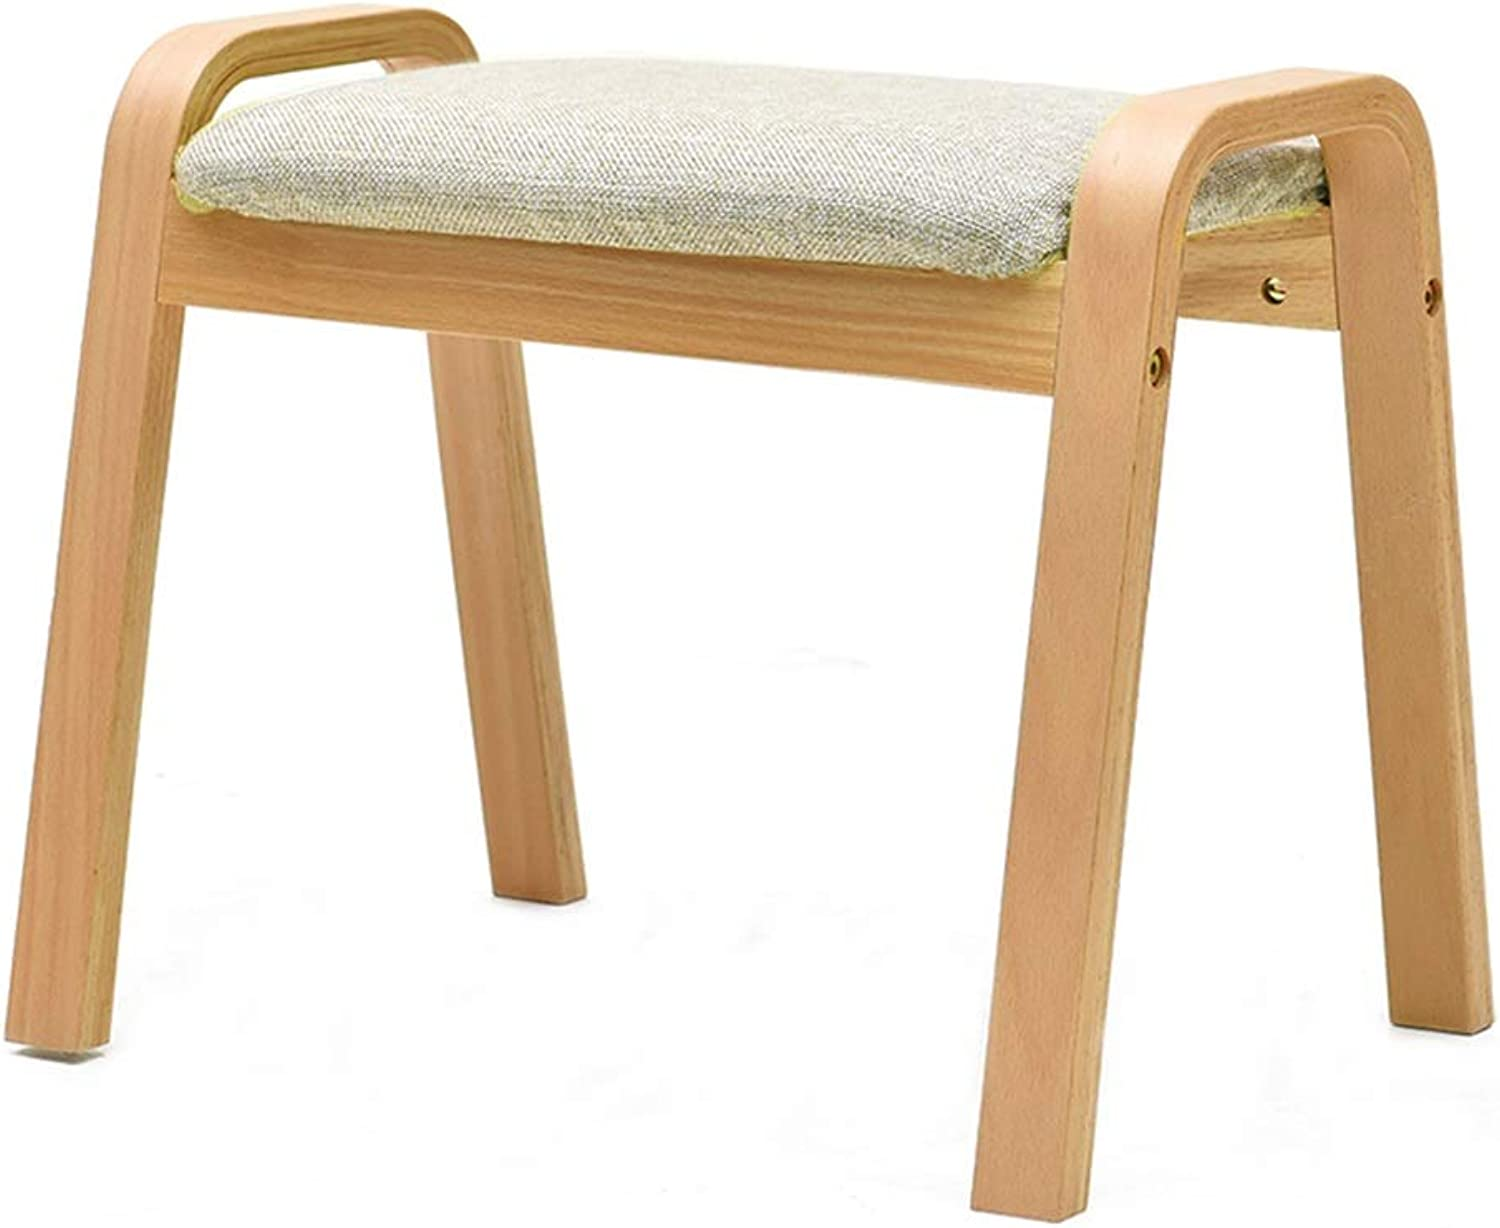 Adult Wooden Small Bench, Home Door Change shoes Bench, Sofa Footstool, Can Be Placed, Removable and Washable (color   B)